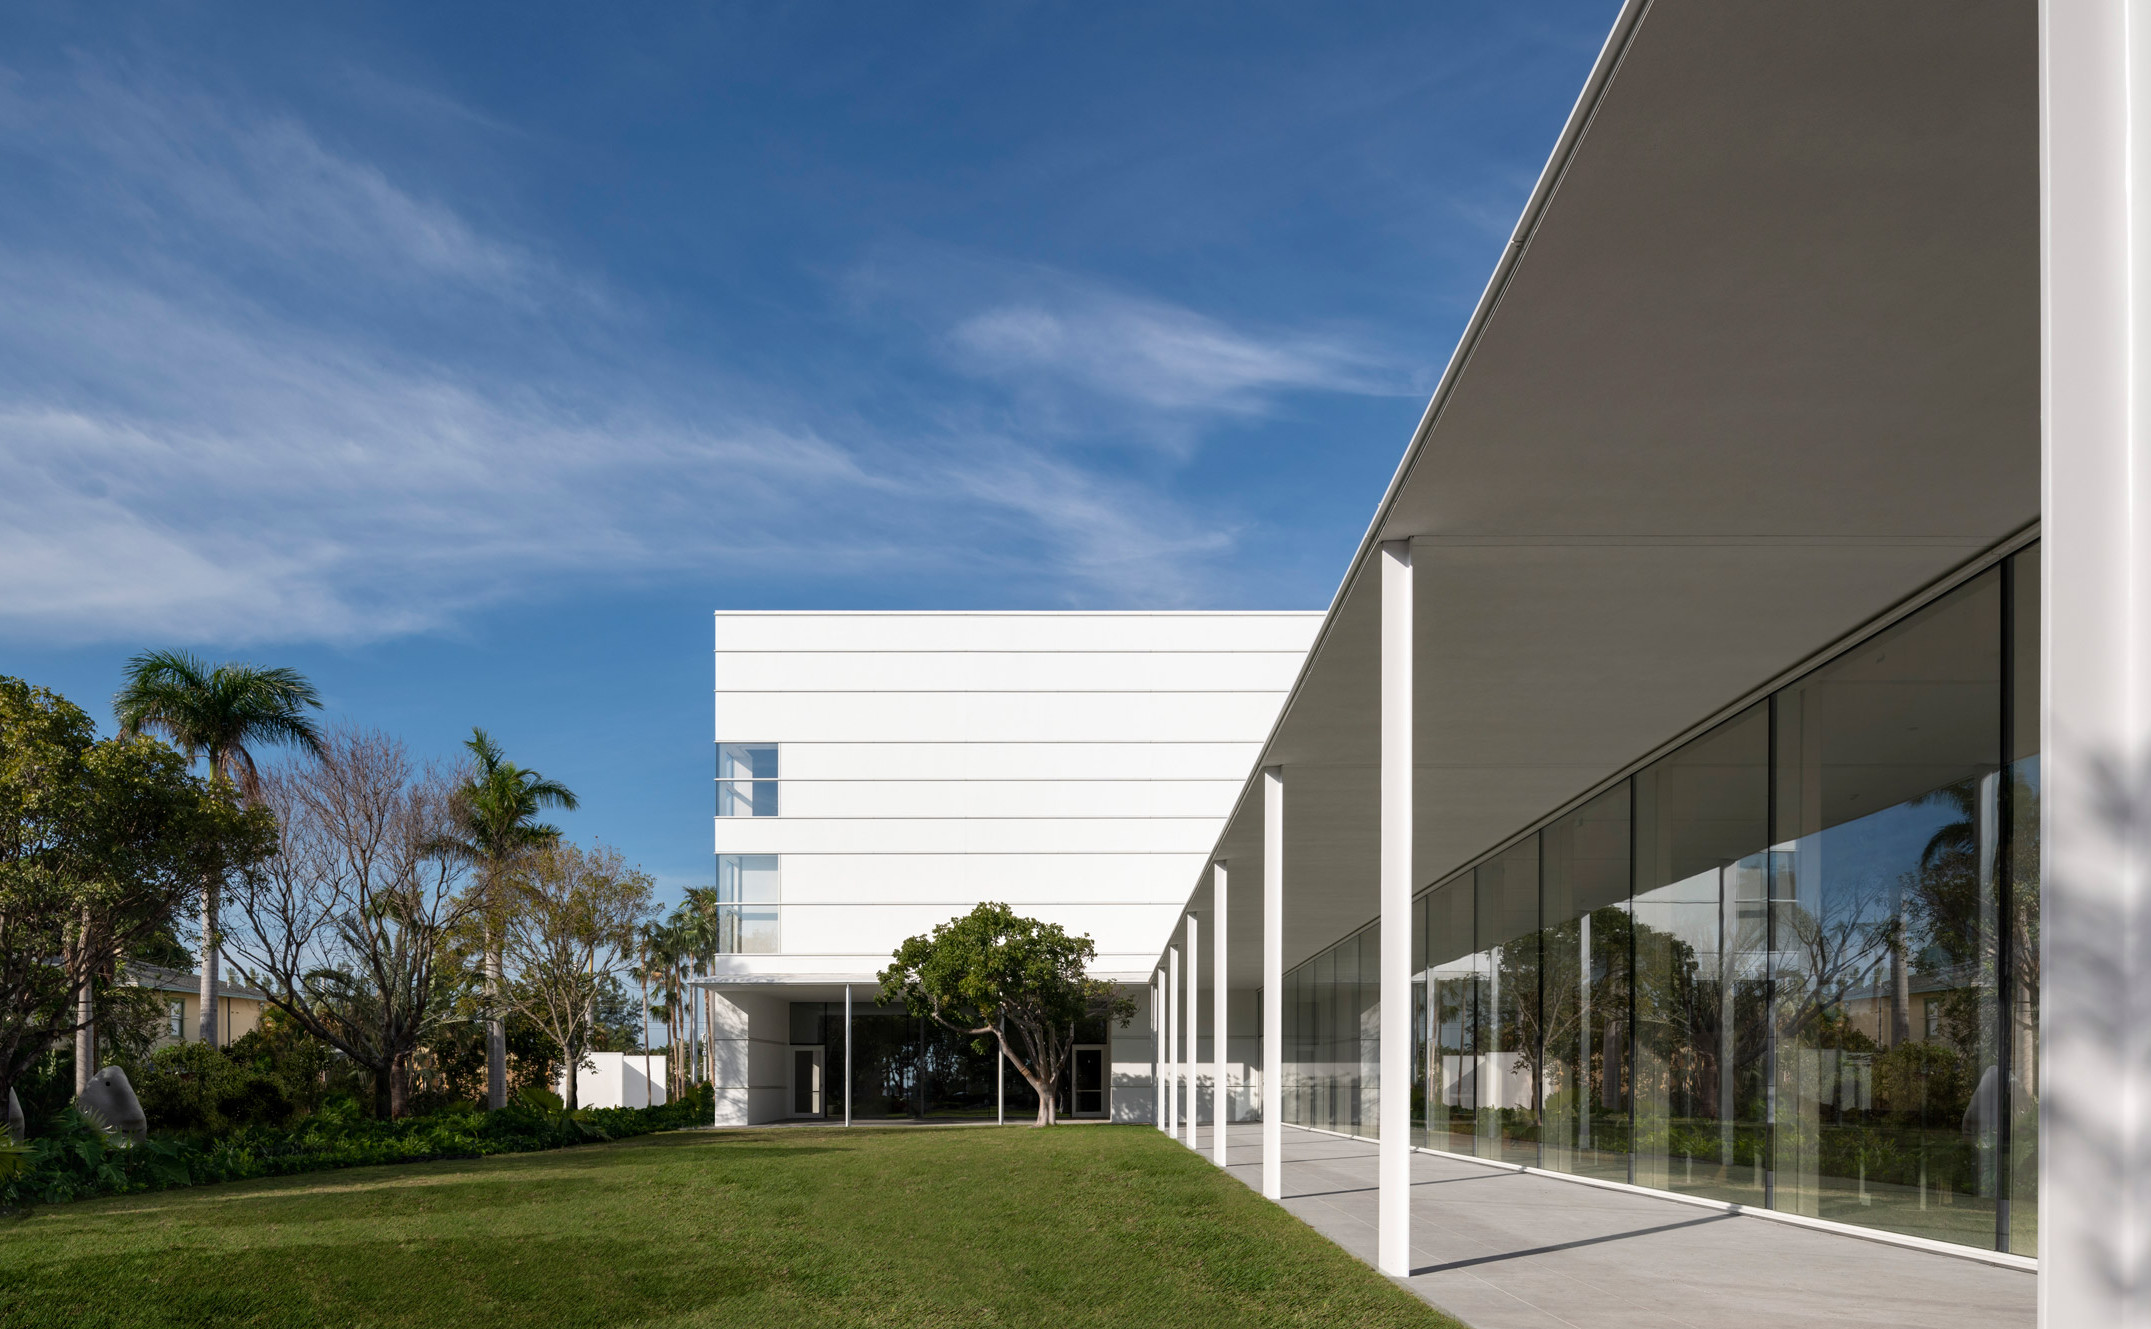 norton-museum-of-art-foster-west-palm-beach-florida_dezeen_2364_col_17